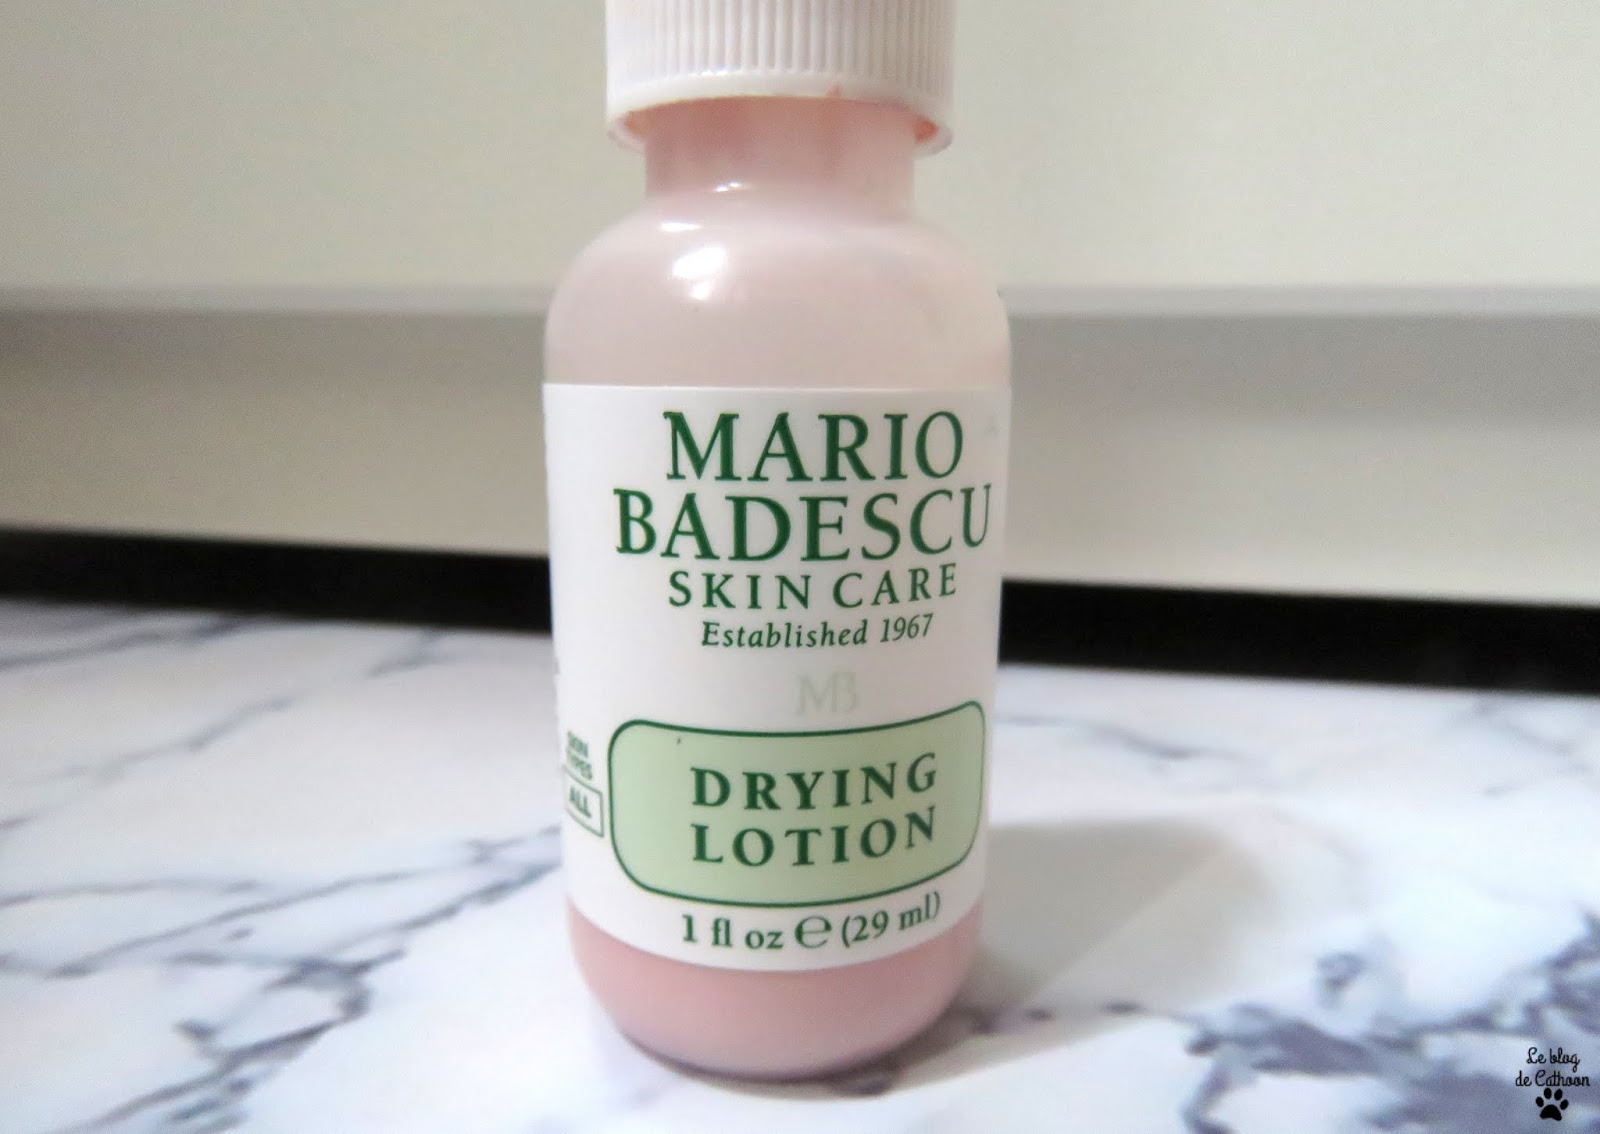 Drying Lotion - Mario Badescu Skin Care - Mario Badescu